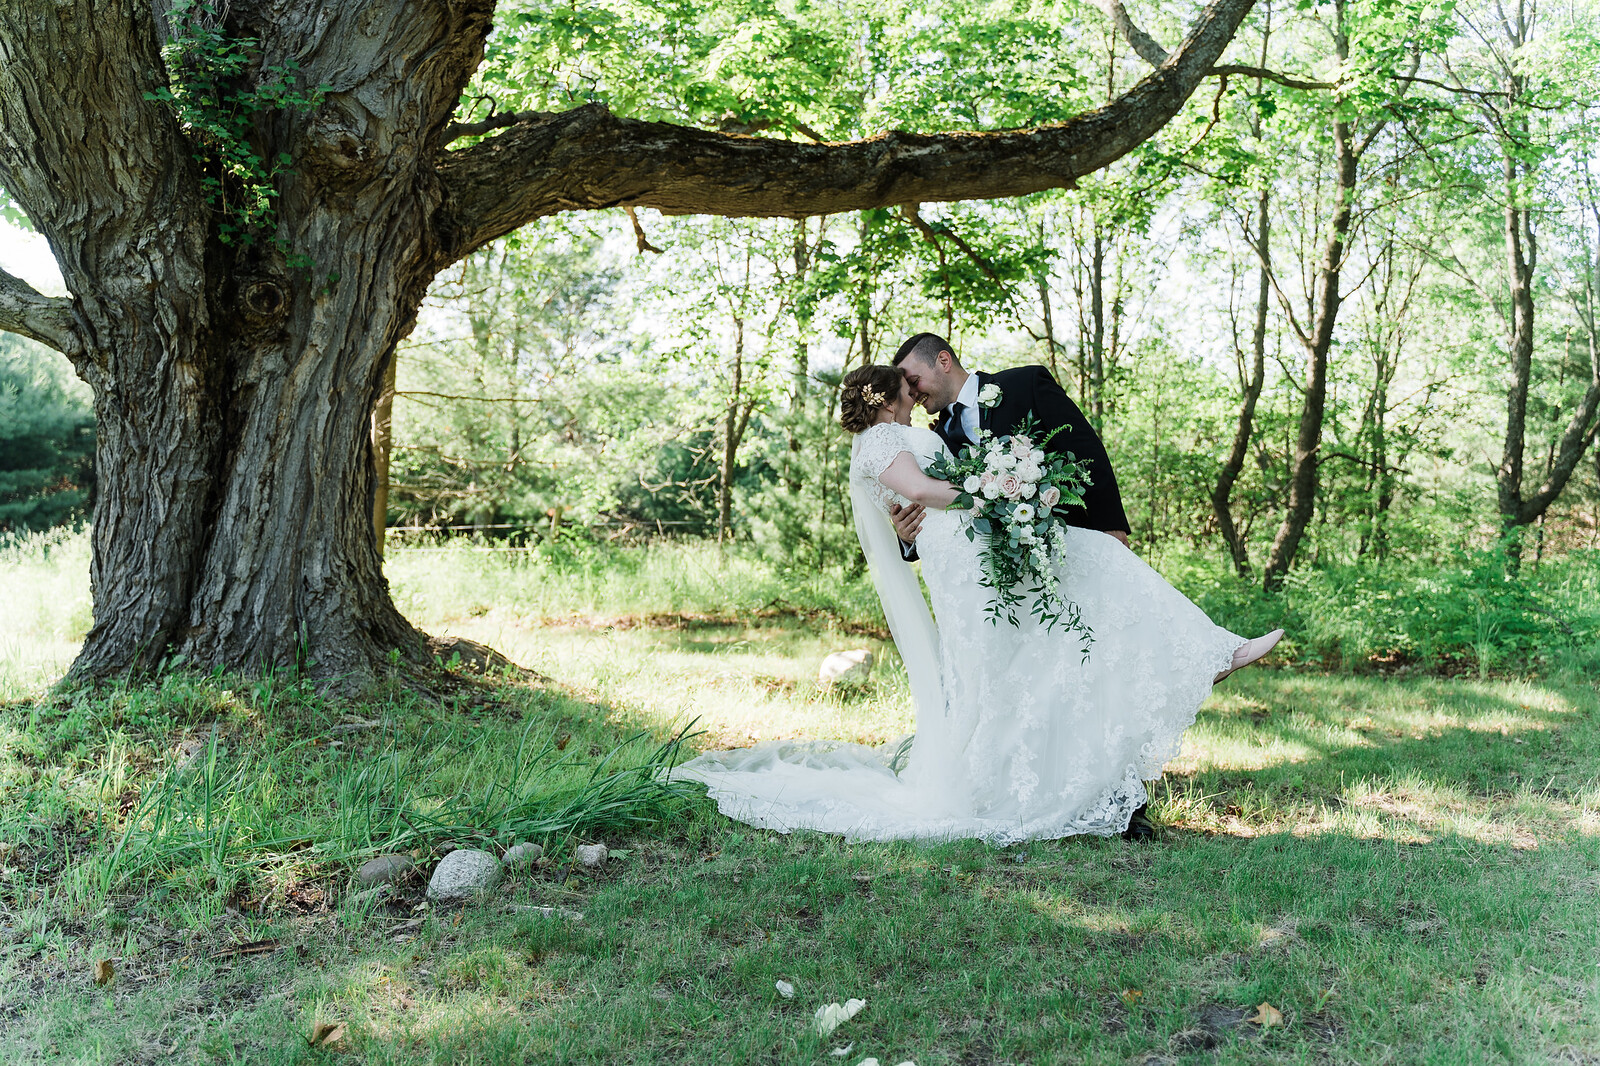 Weddings - Crooked Vine is the most majestic and secluded wedding destination in the Petoskey Wine Region.  Nestled in an heirloom apple orchard east of Alanson, Crooked Vine Vineyard is the perfect setting for weddings and special events.